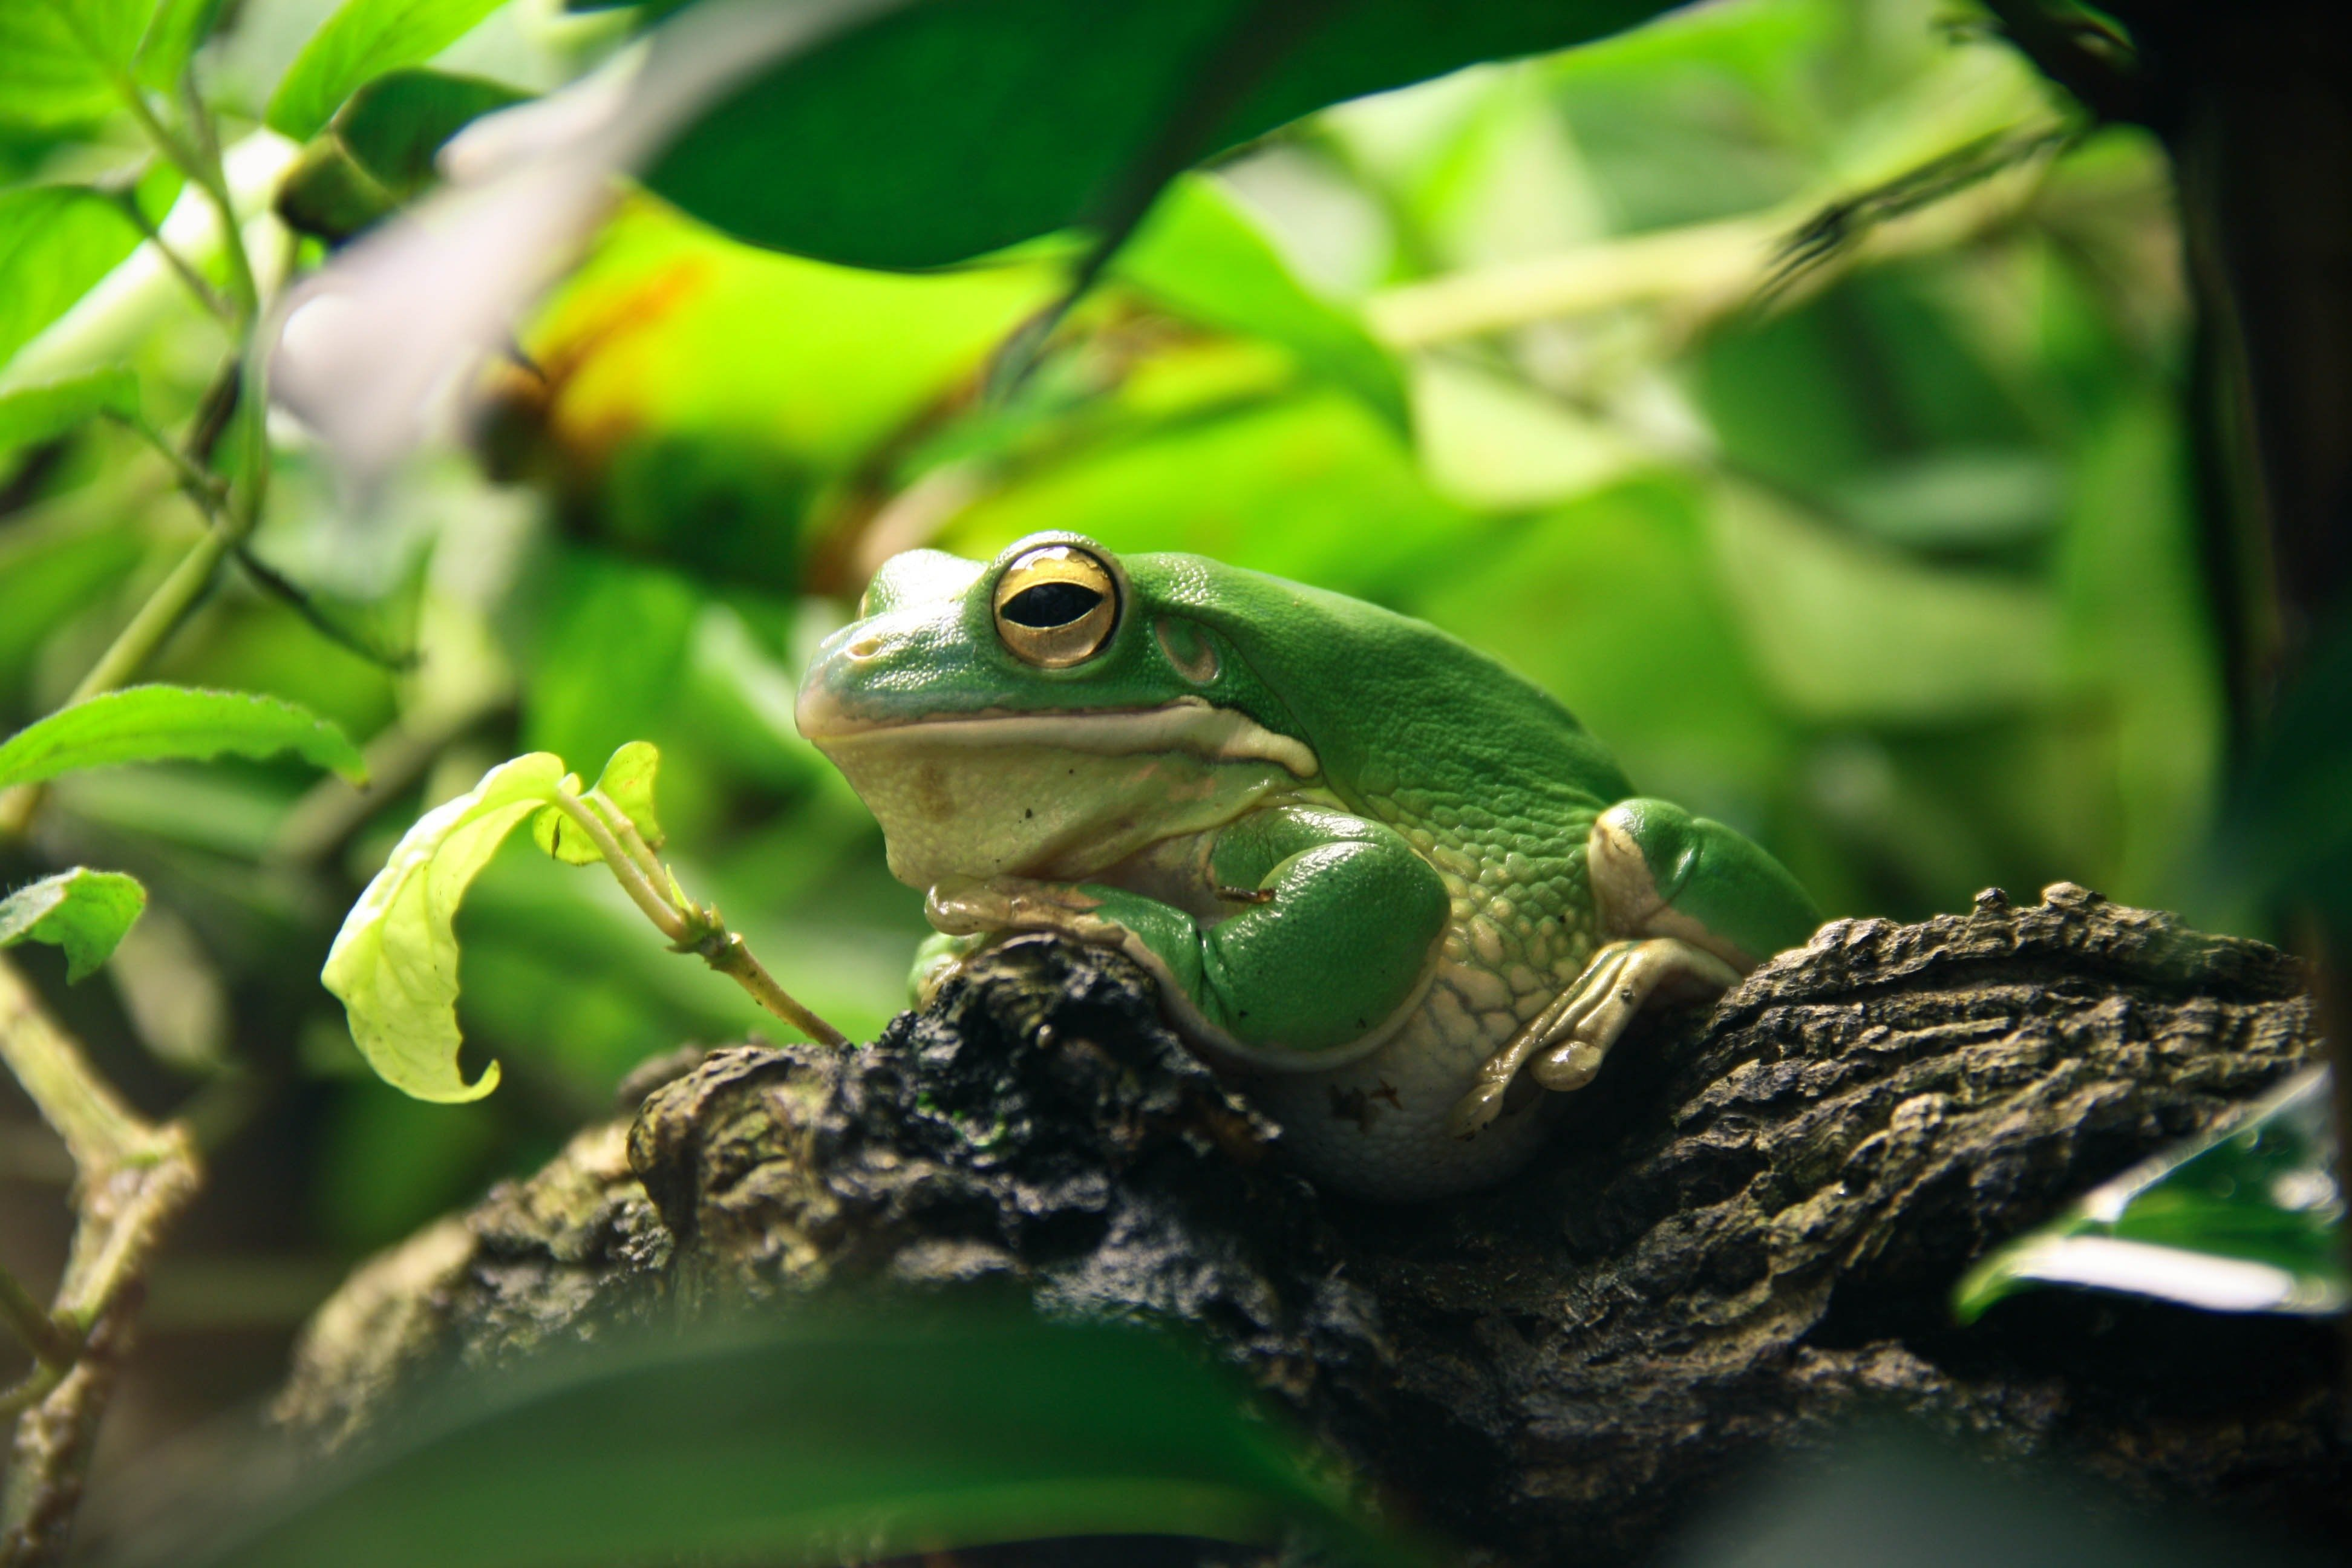 Pictured - A green and white frog resting on a brown tree branch | Source: Pexels